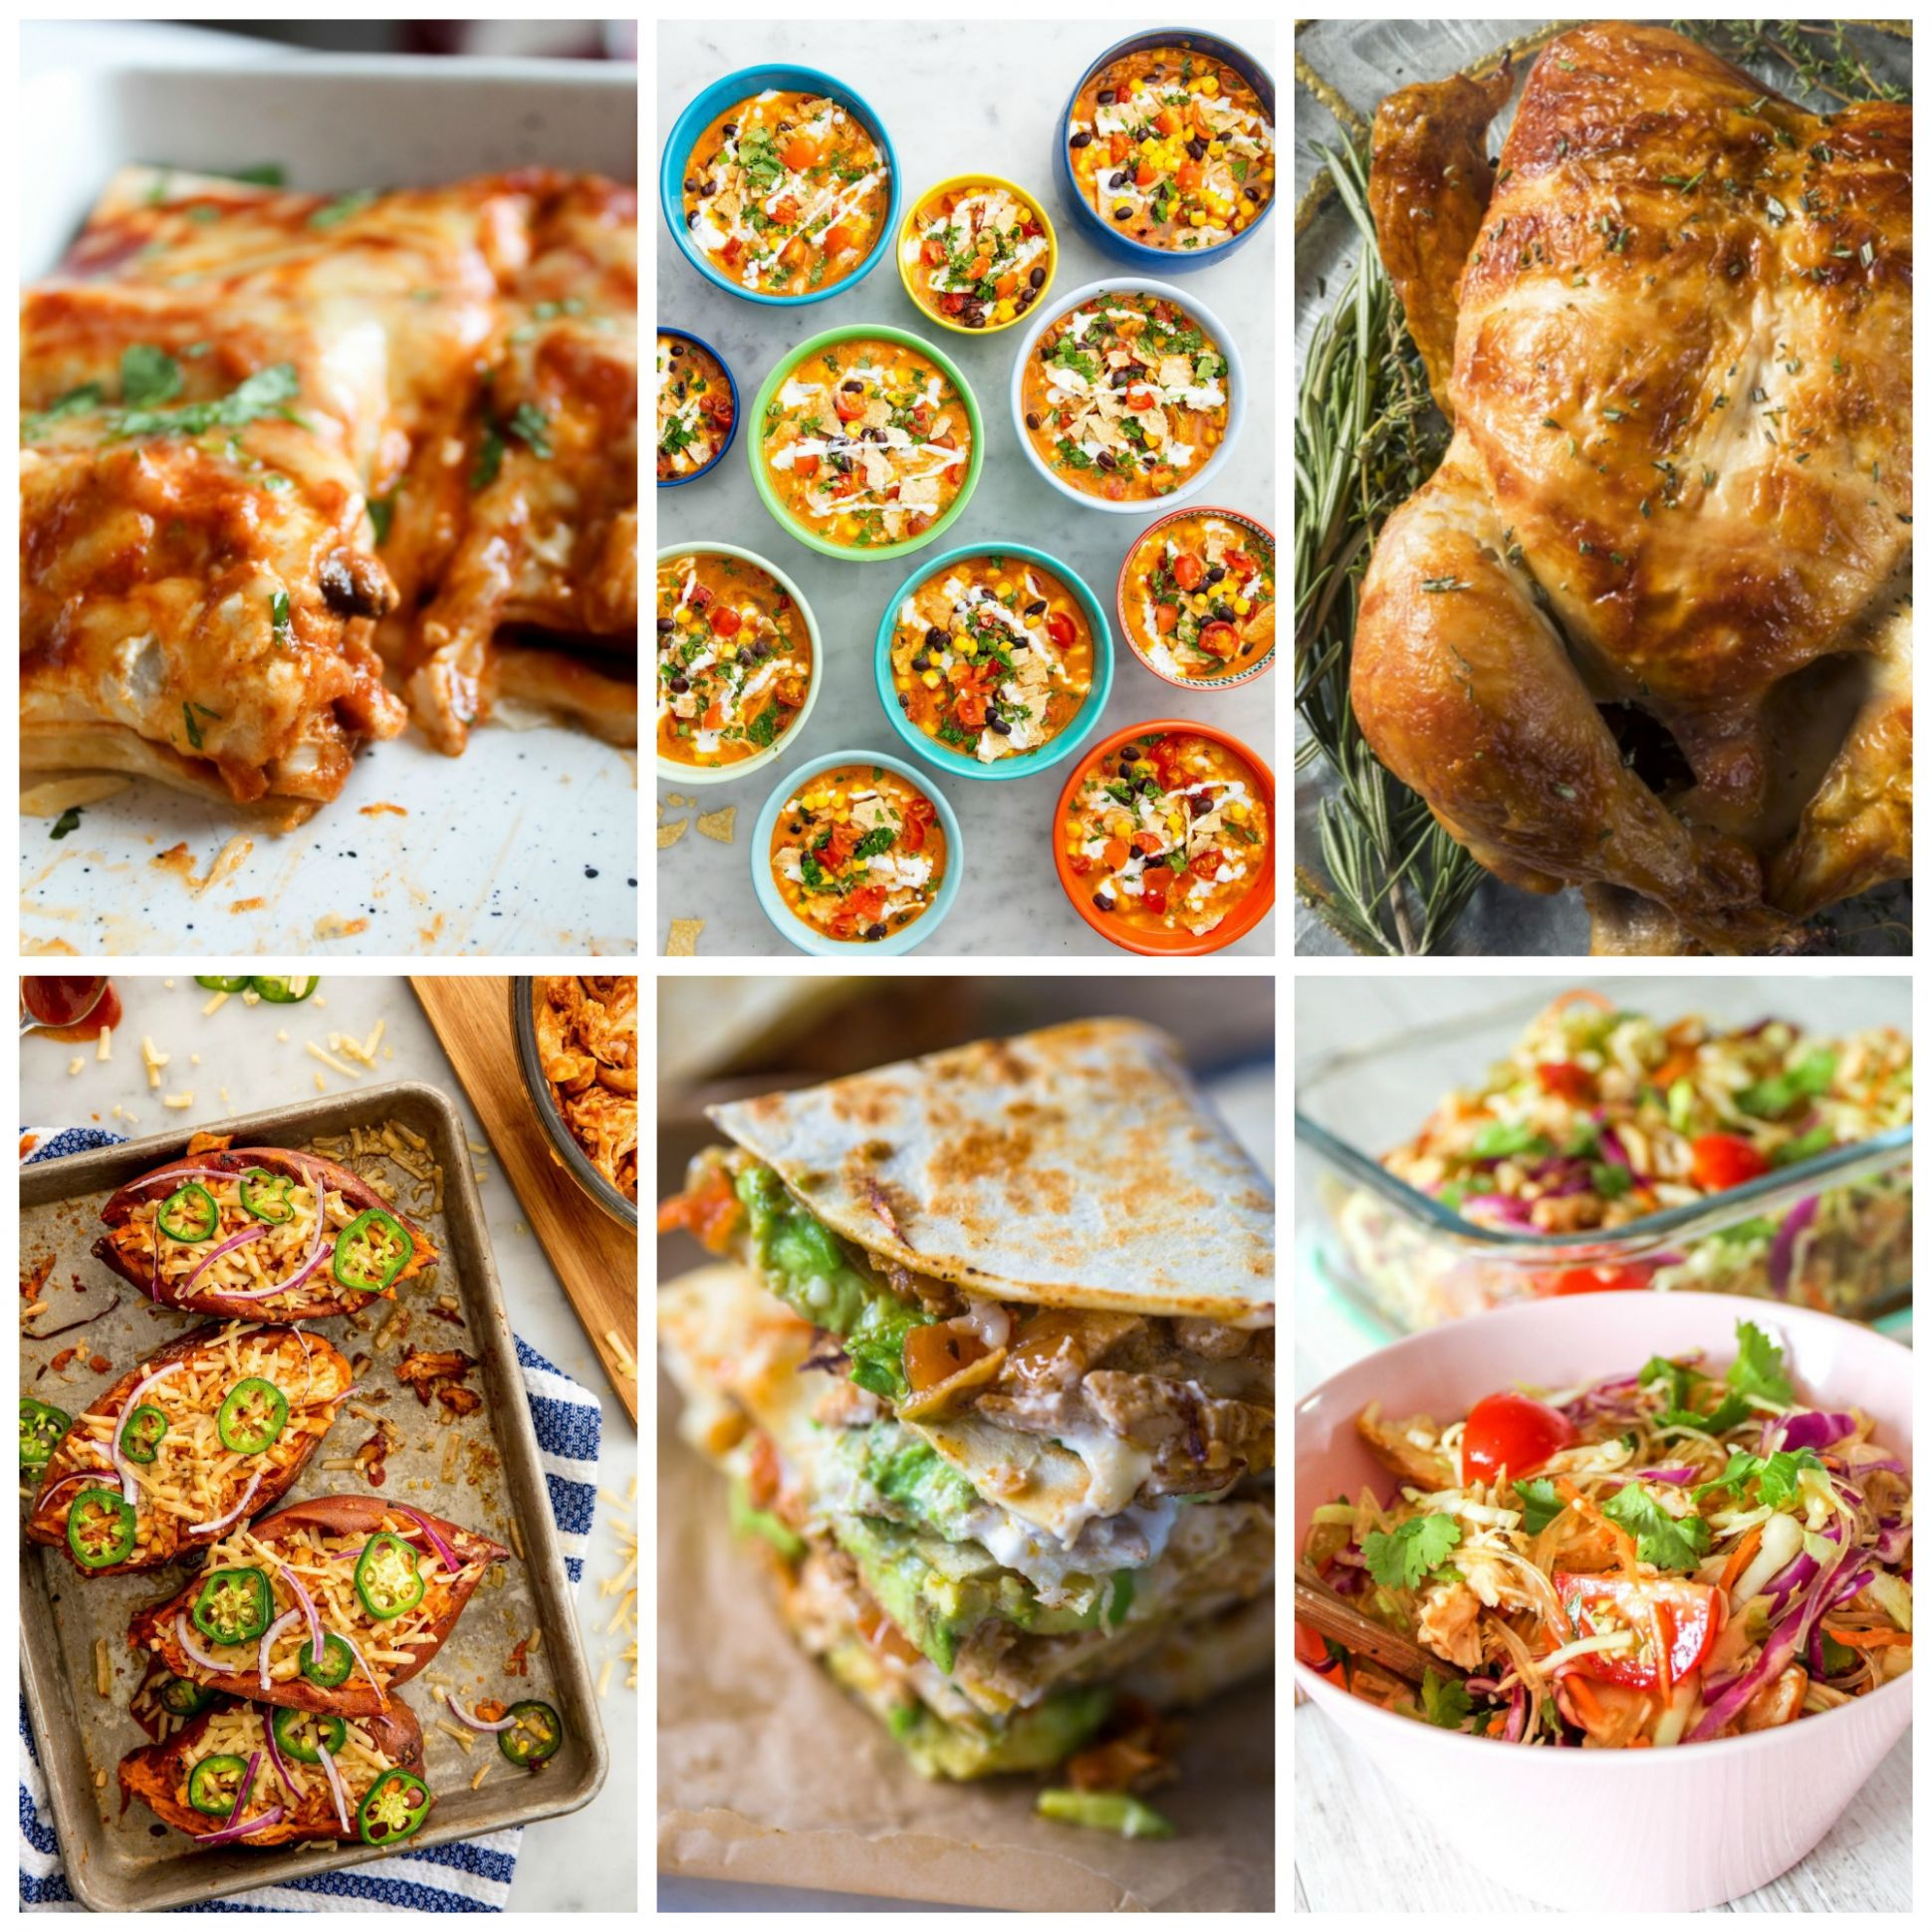 8 Healthy Meals to Make using a Rotisserie Chicken - Clean Eating ..